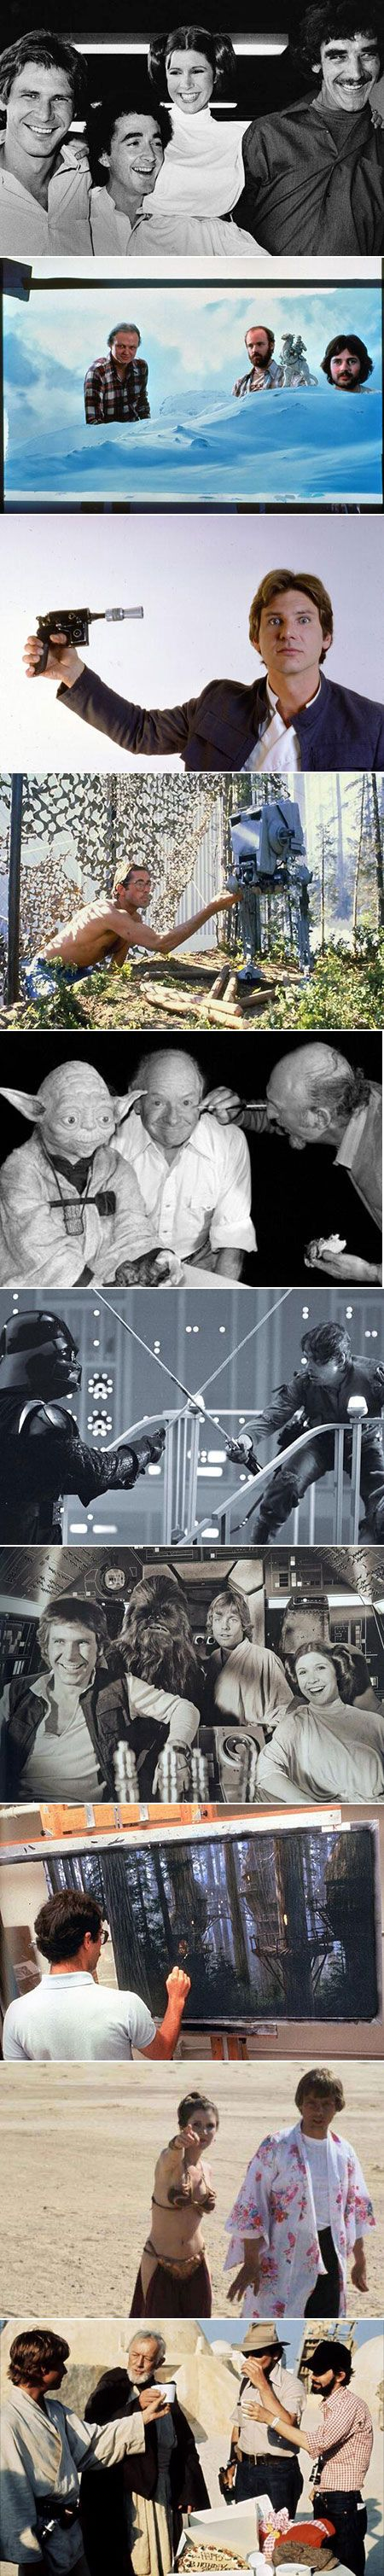 Here are some rare behind-the-scenes Star Wars movie photos.